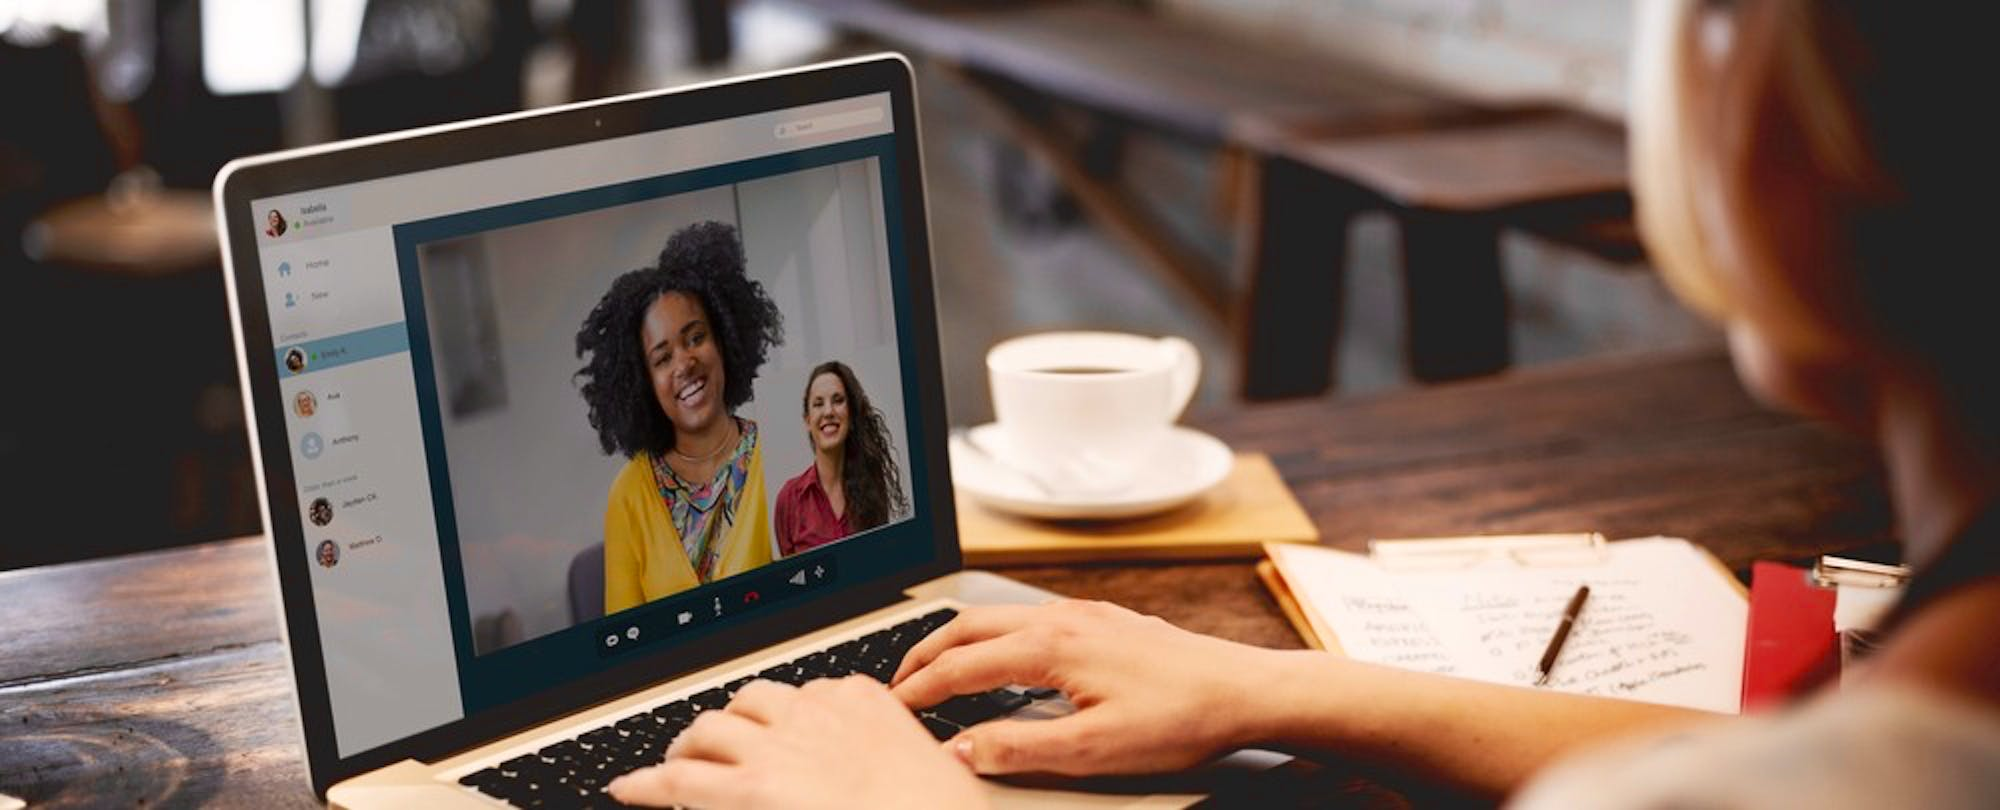 How to Keep the Human Element in Online Classes